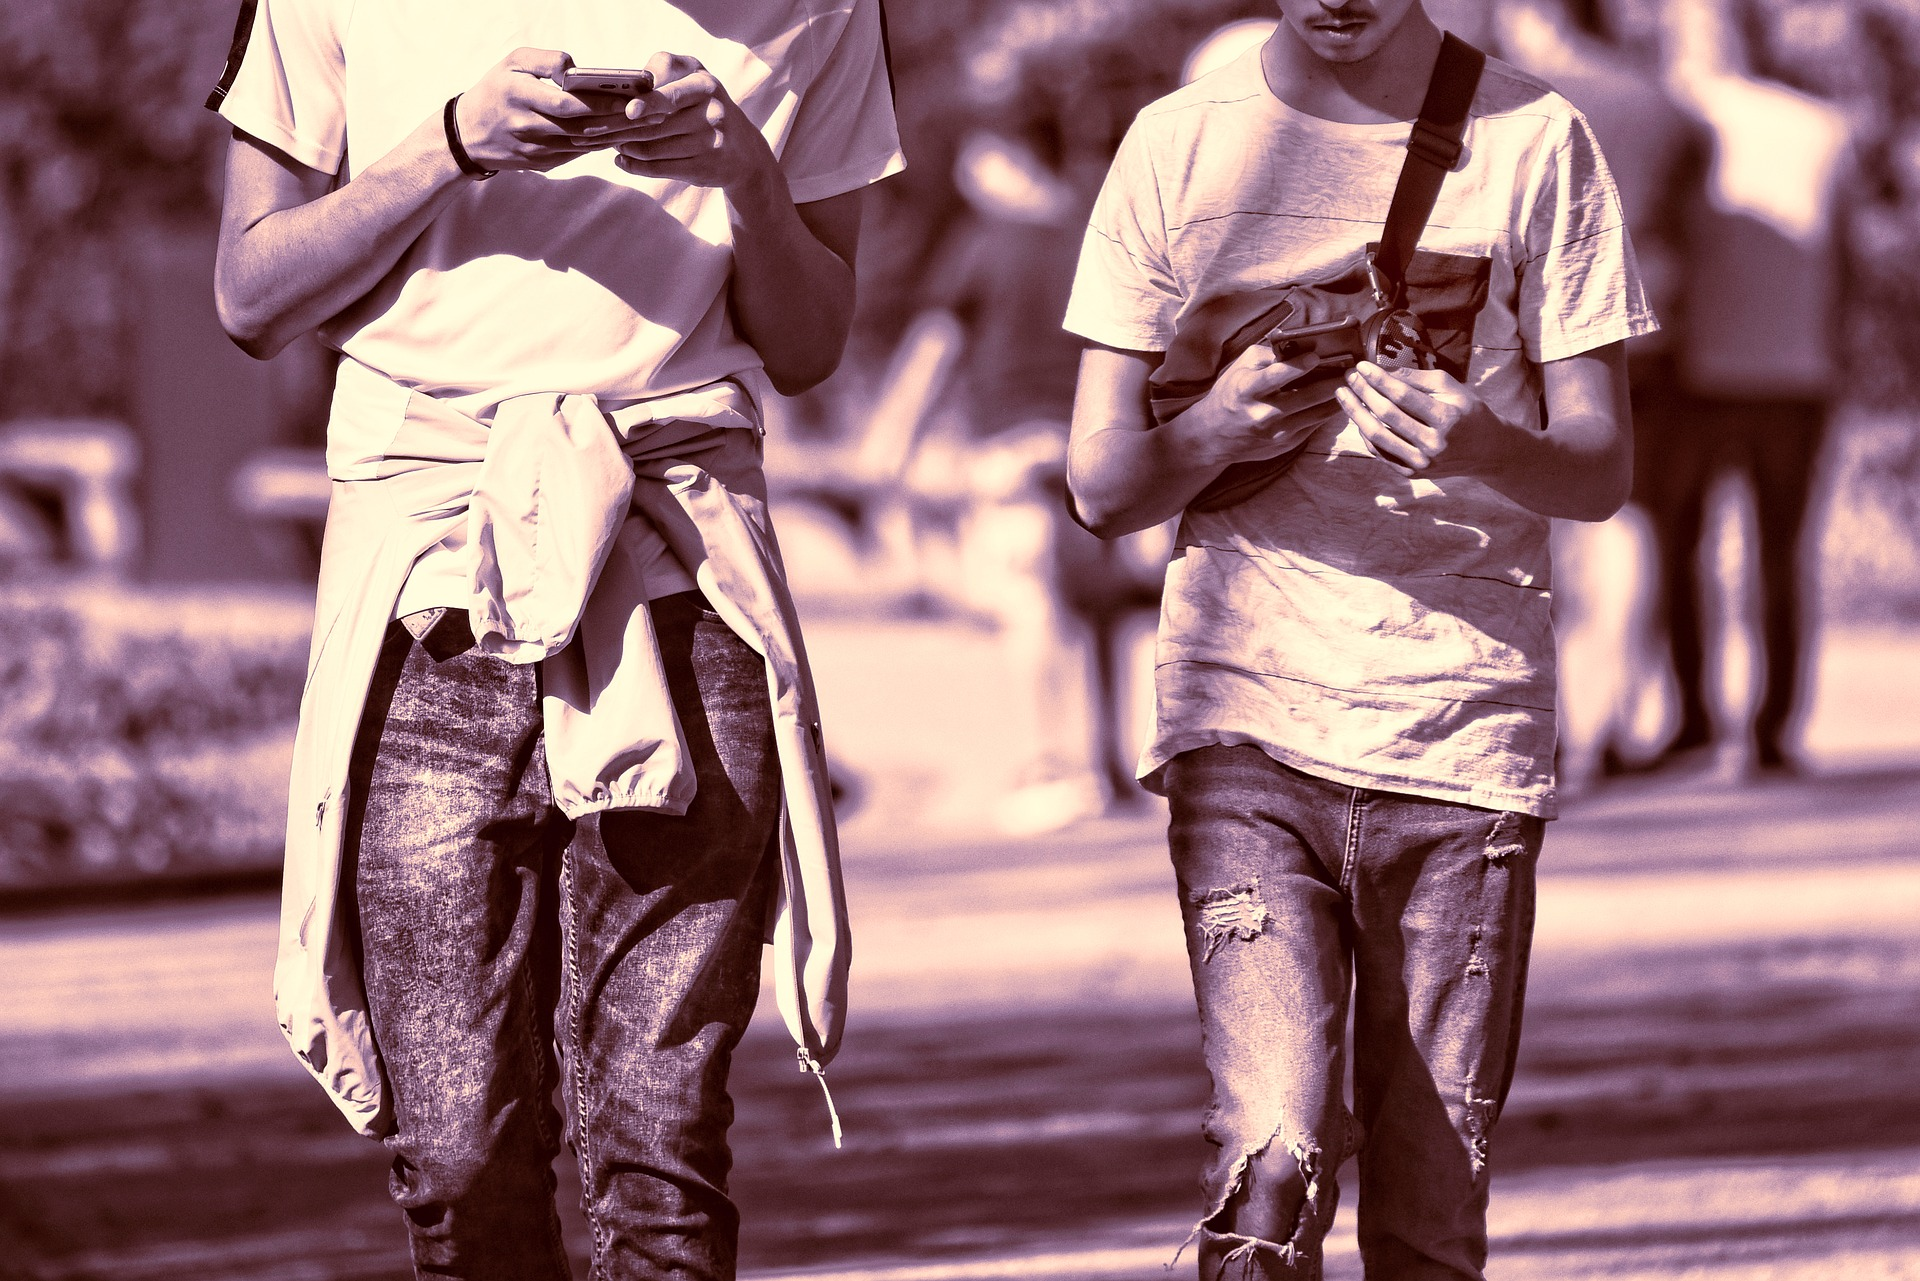 sepia photo of two guys in t-shirt and jeans walking while using phones